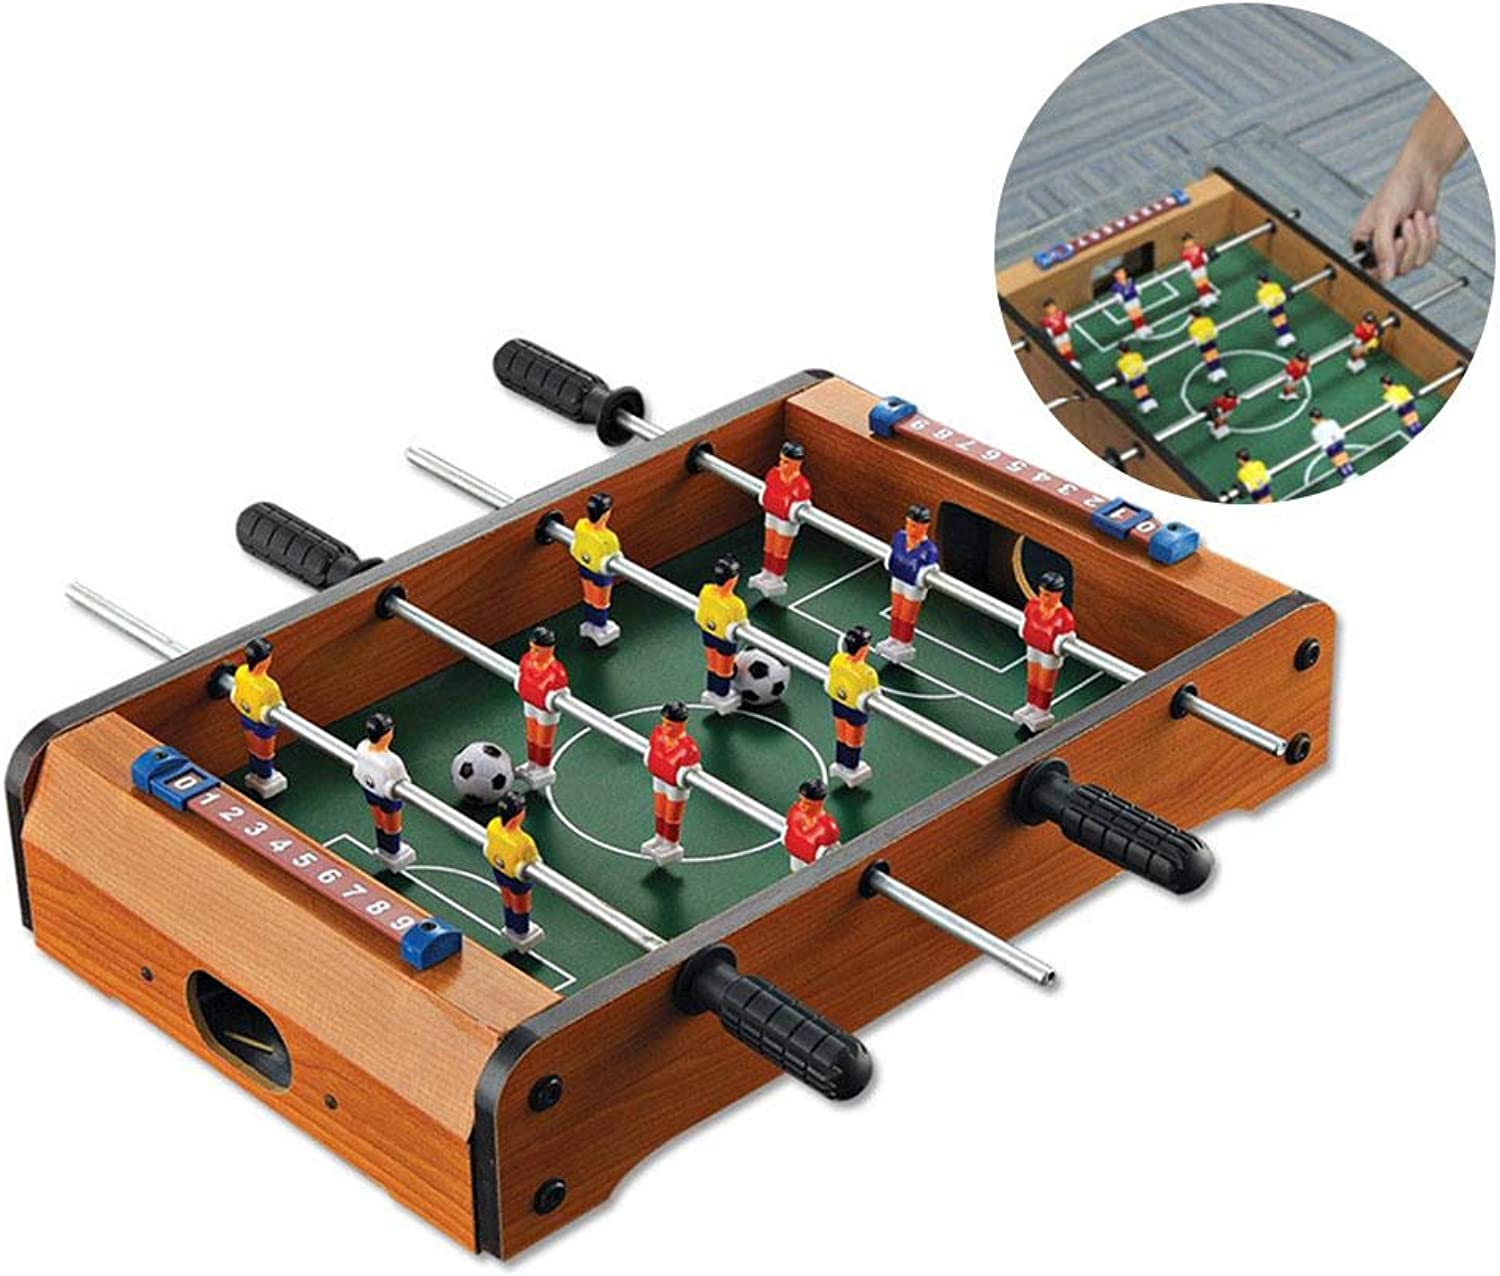 Mini Table Football,Foosball Table Soccer Table Arcade Game Room Football Table Sports Game for Kids, Adults,Mini Tabletop Foosball Table 34.521.58cm